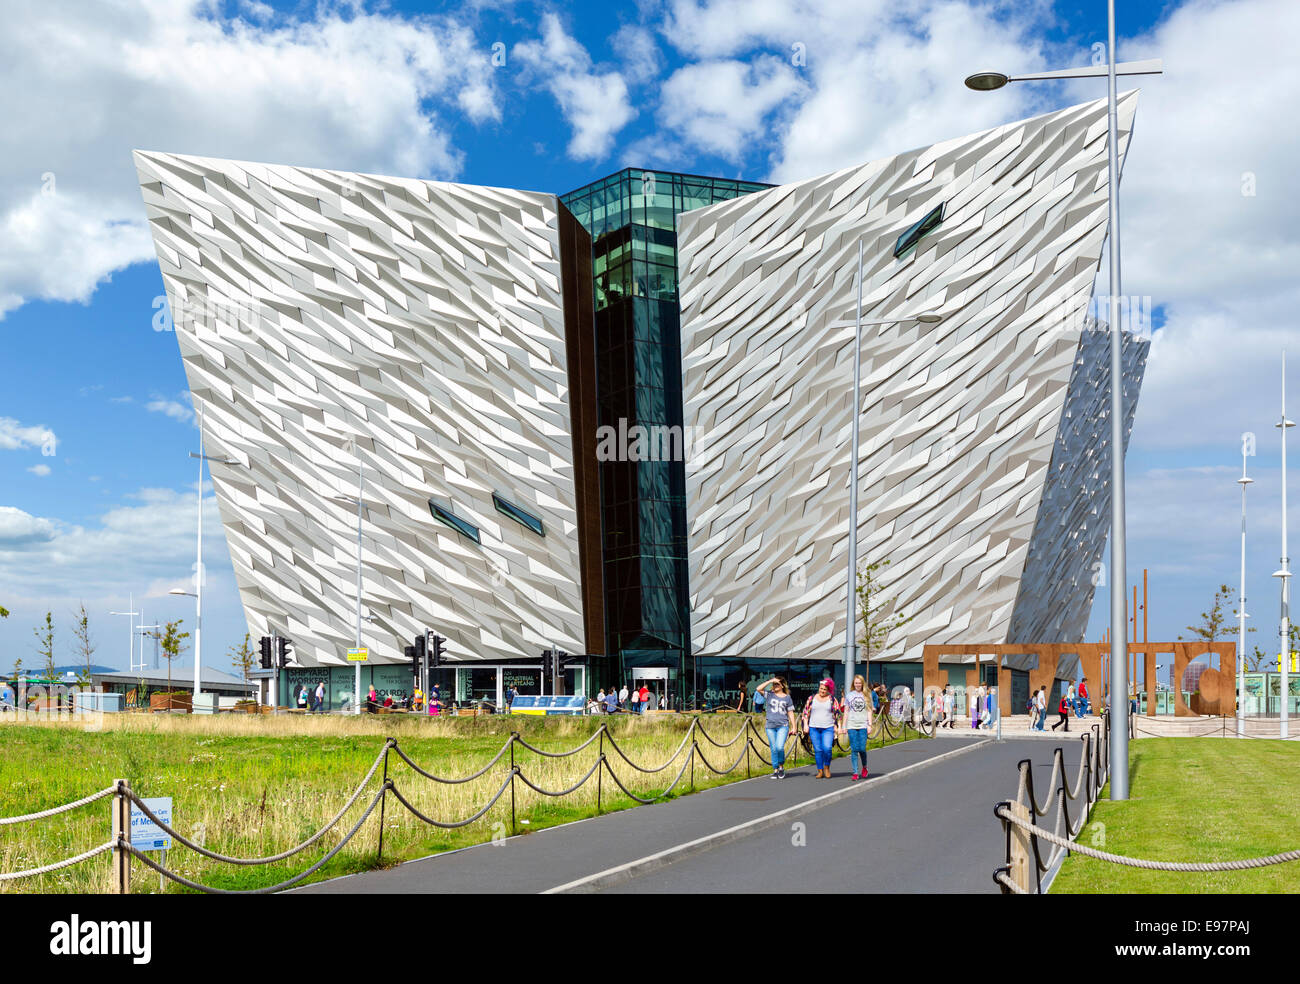 Titanic Belfast museum, Titanic Quarter, Belfast, Northern Ireland, UK Stock Photo